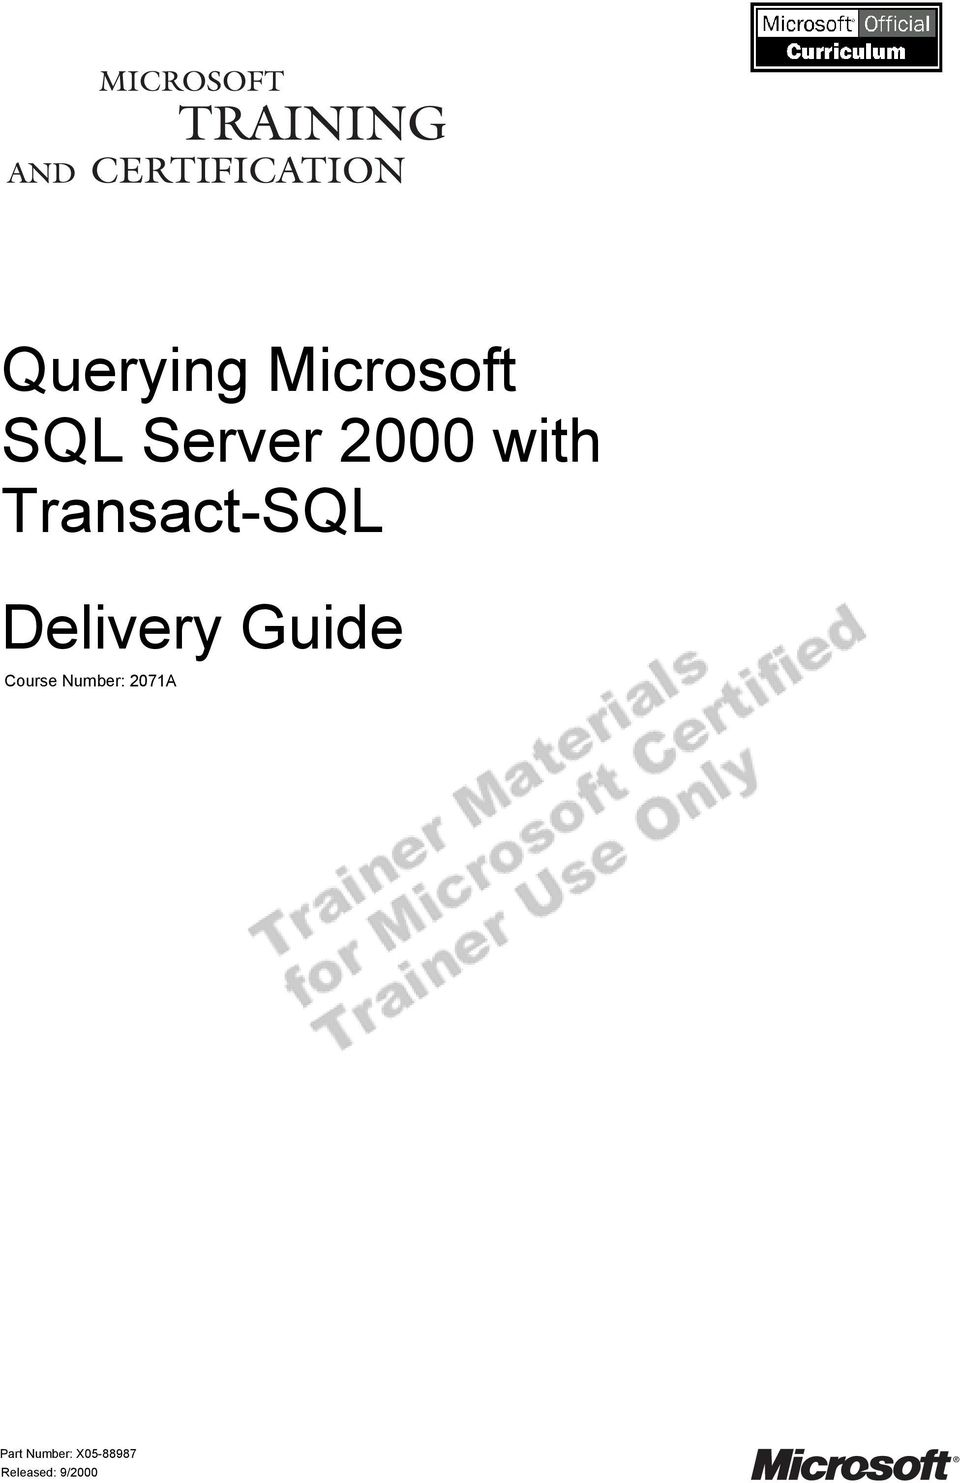 Querying Microsoft Sql Server 2000 With Transact Sql Delivery Guide